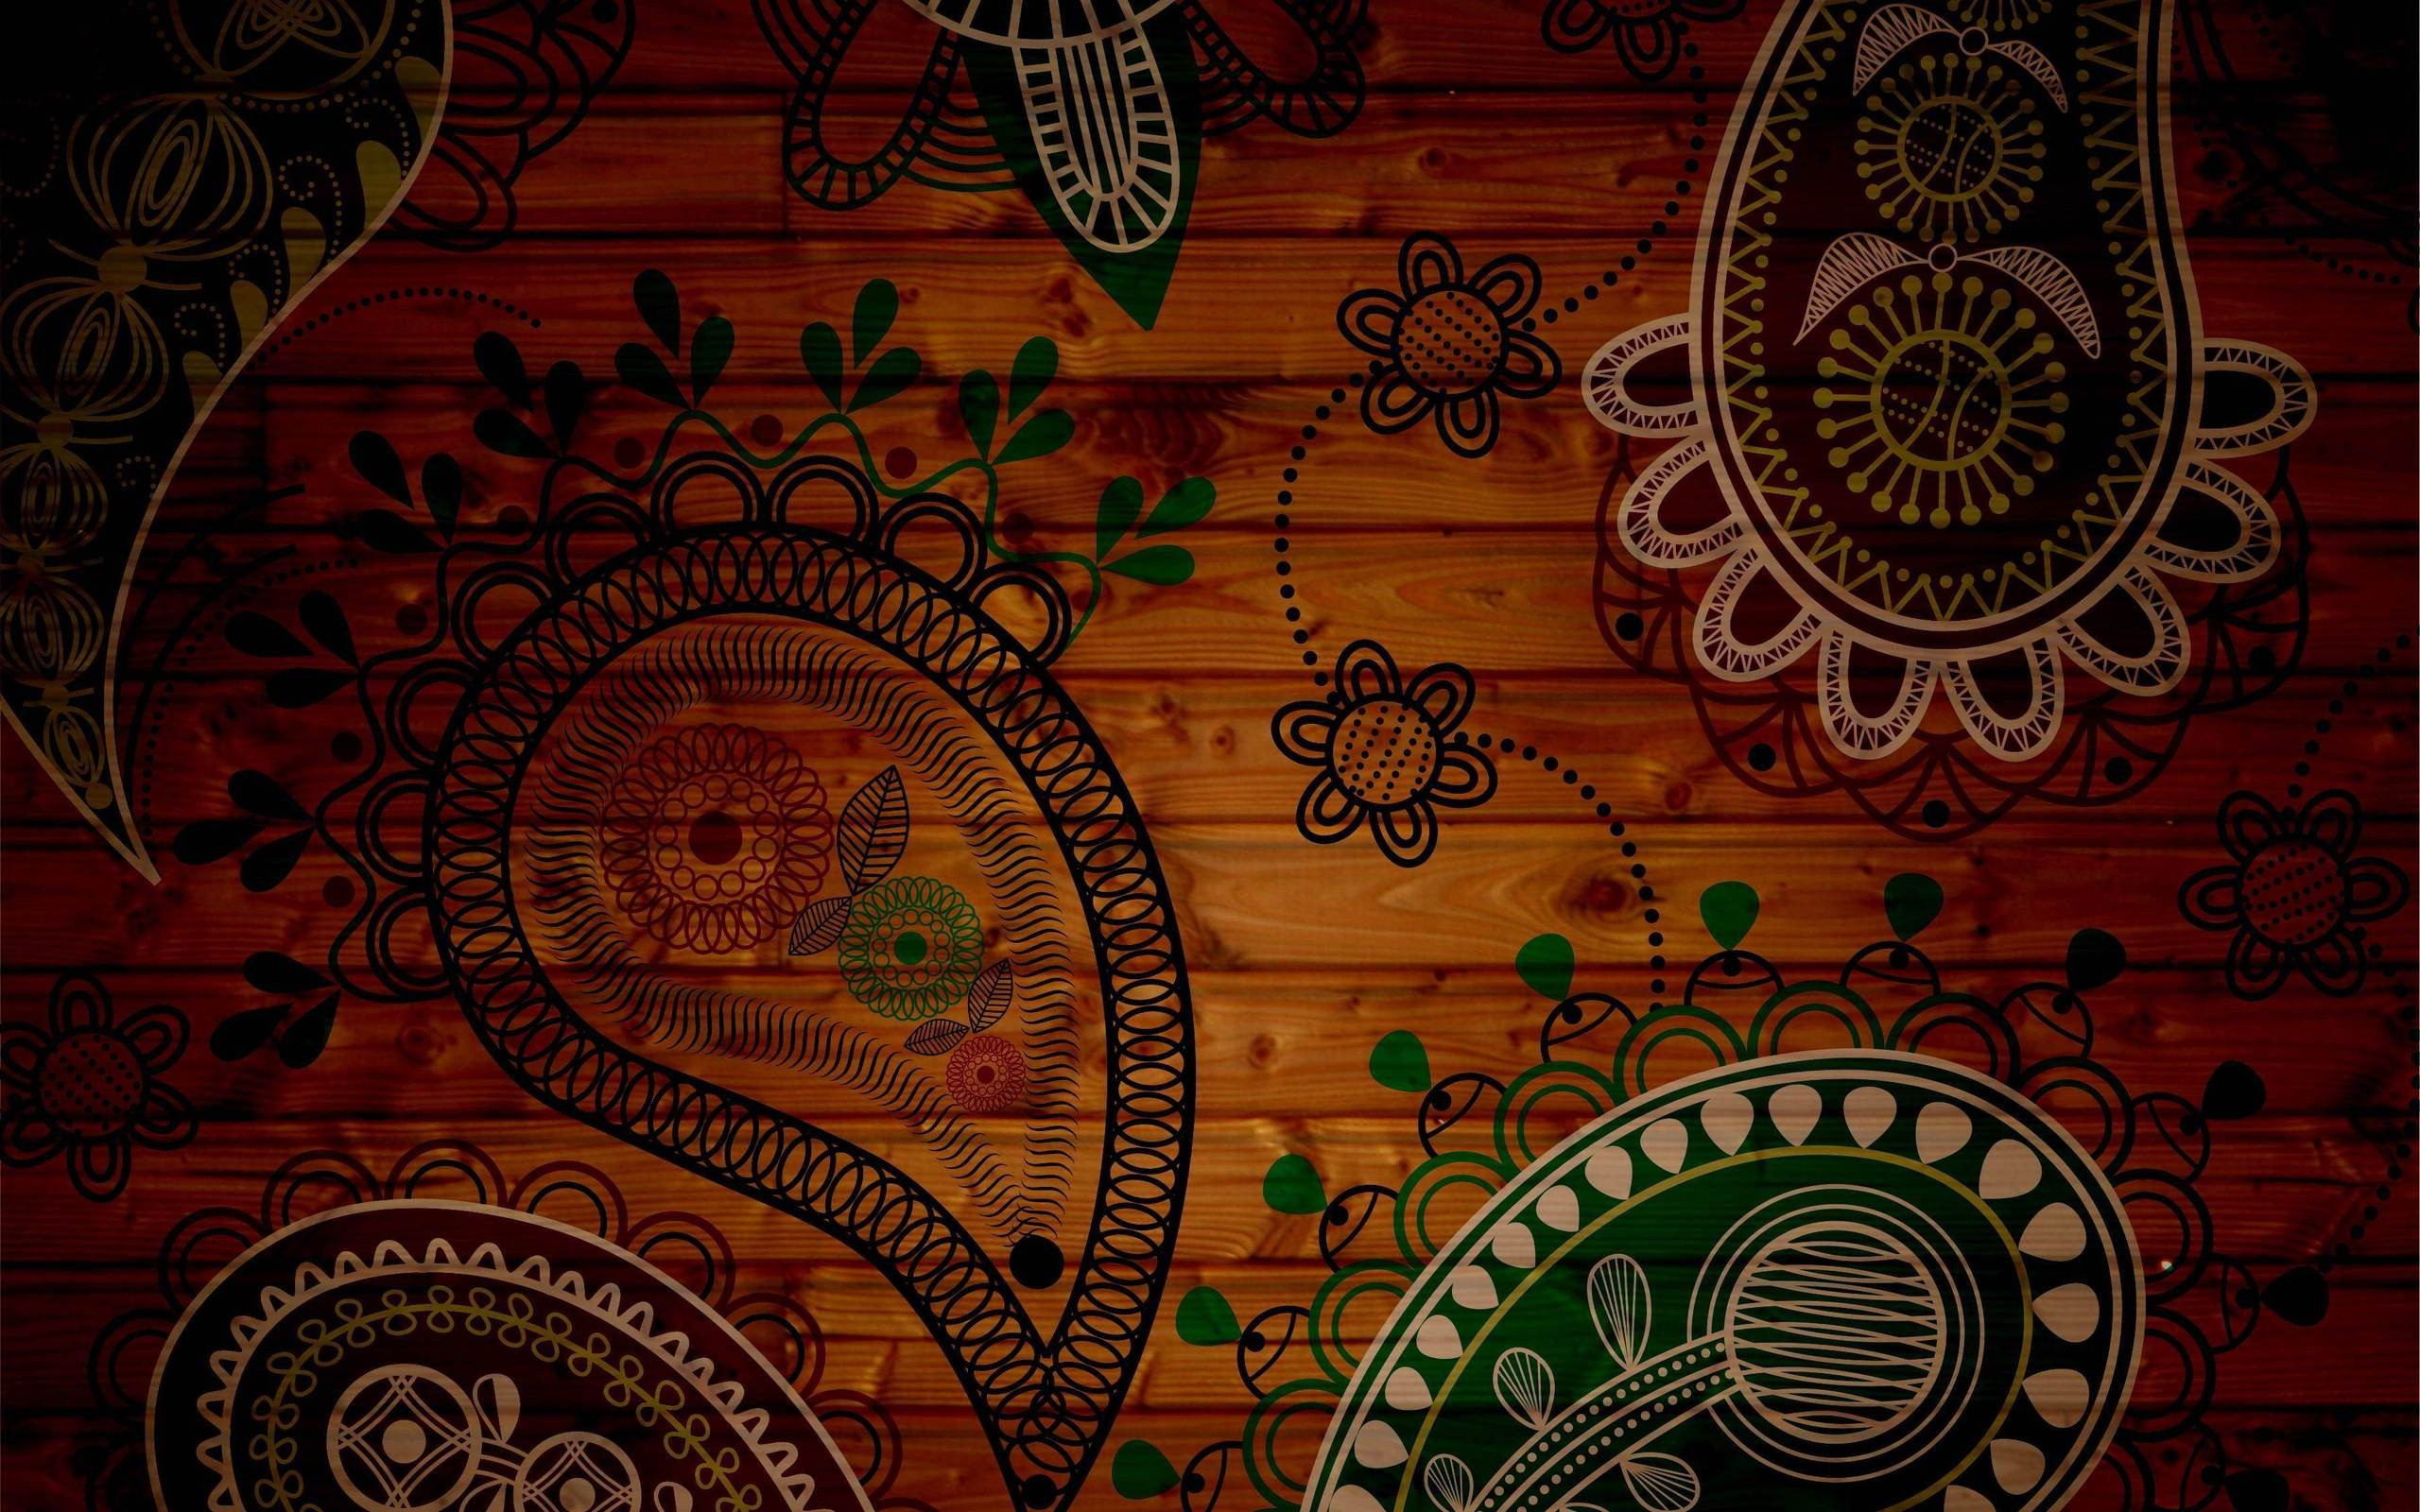 Paisley wallpaper | 2560x1600 | #45361